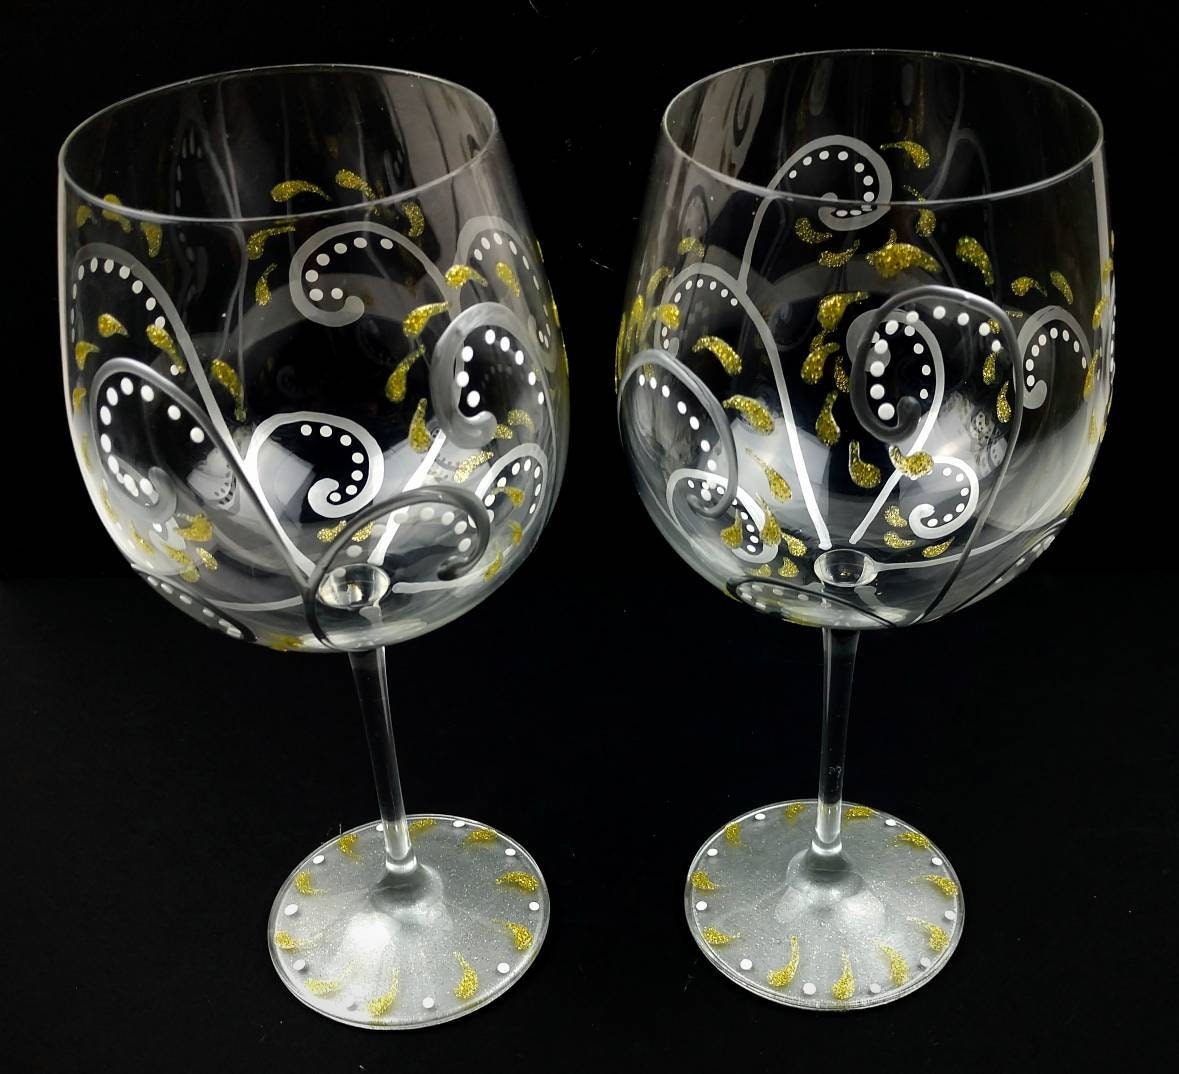 2 Fancy, Elegant Hand Painted Wine Glasses, Set of Two, Pretty Sparkling Gold & Silver Swirl Design, Wine Gift Idea, Sparkly Wine Glasses